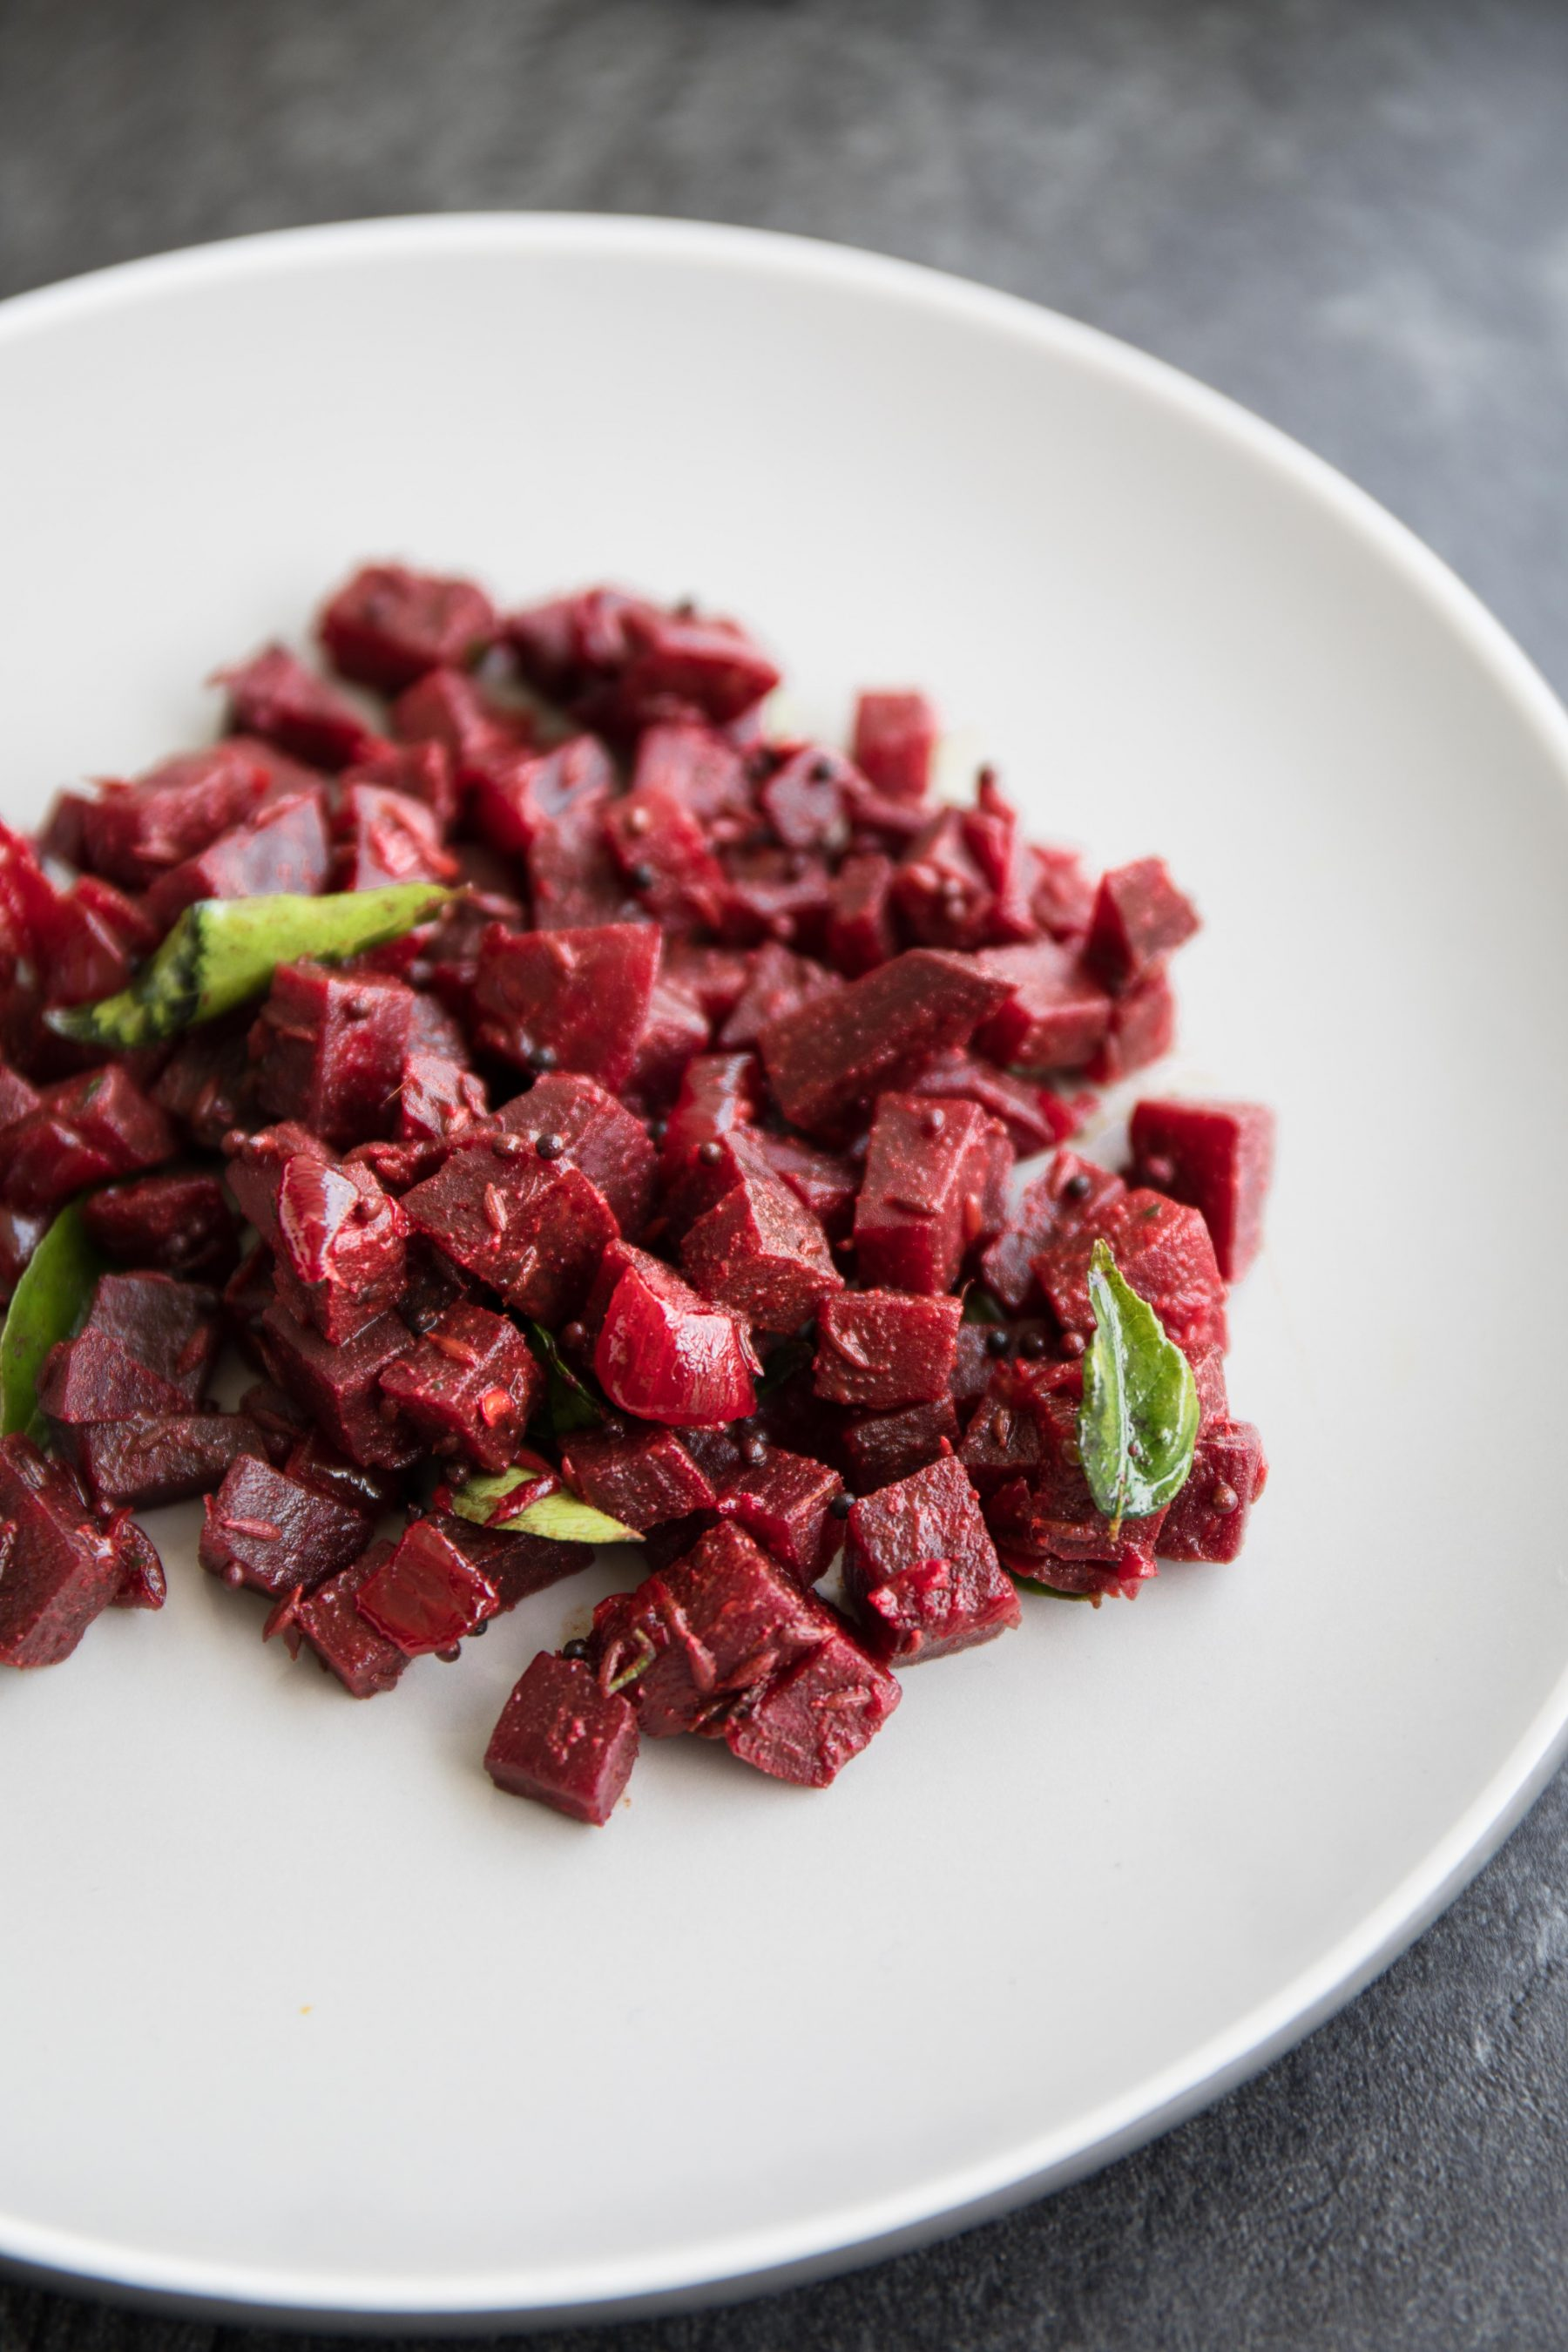 Sri Lankan Dry Beetroot Curry Recipe and Food Photography by Shika Finnemore, The Bellephant